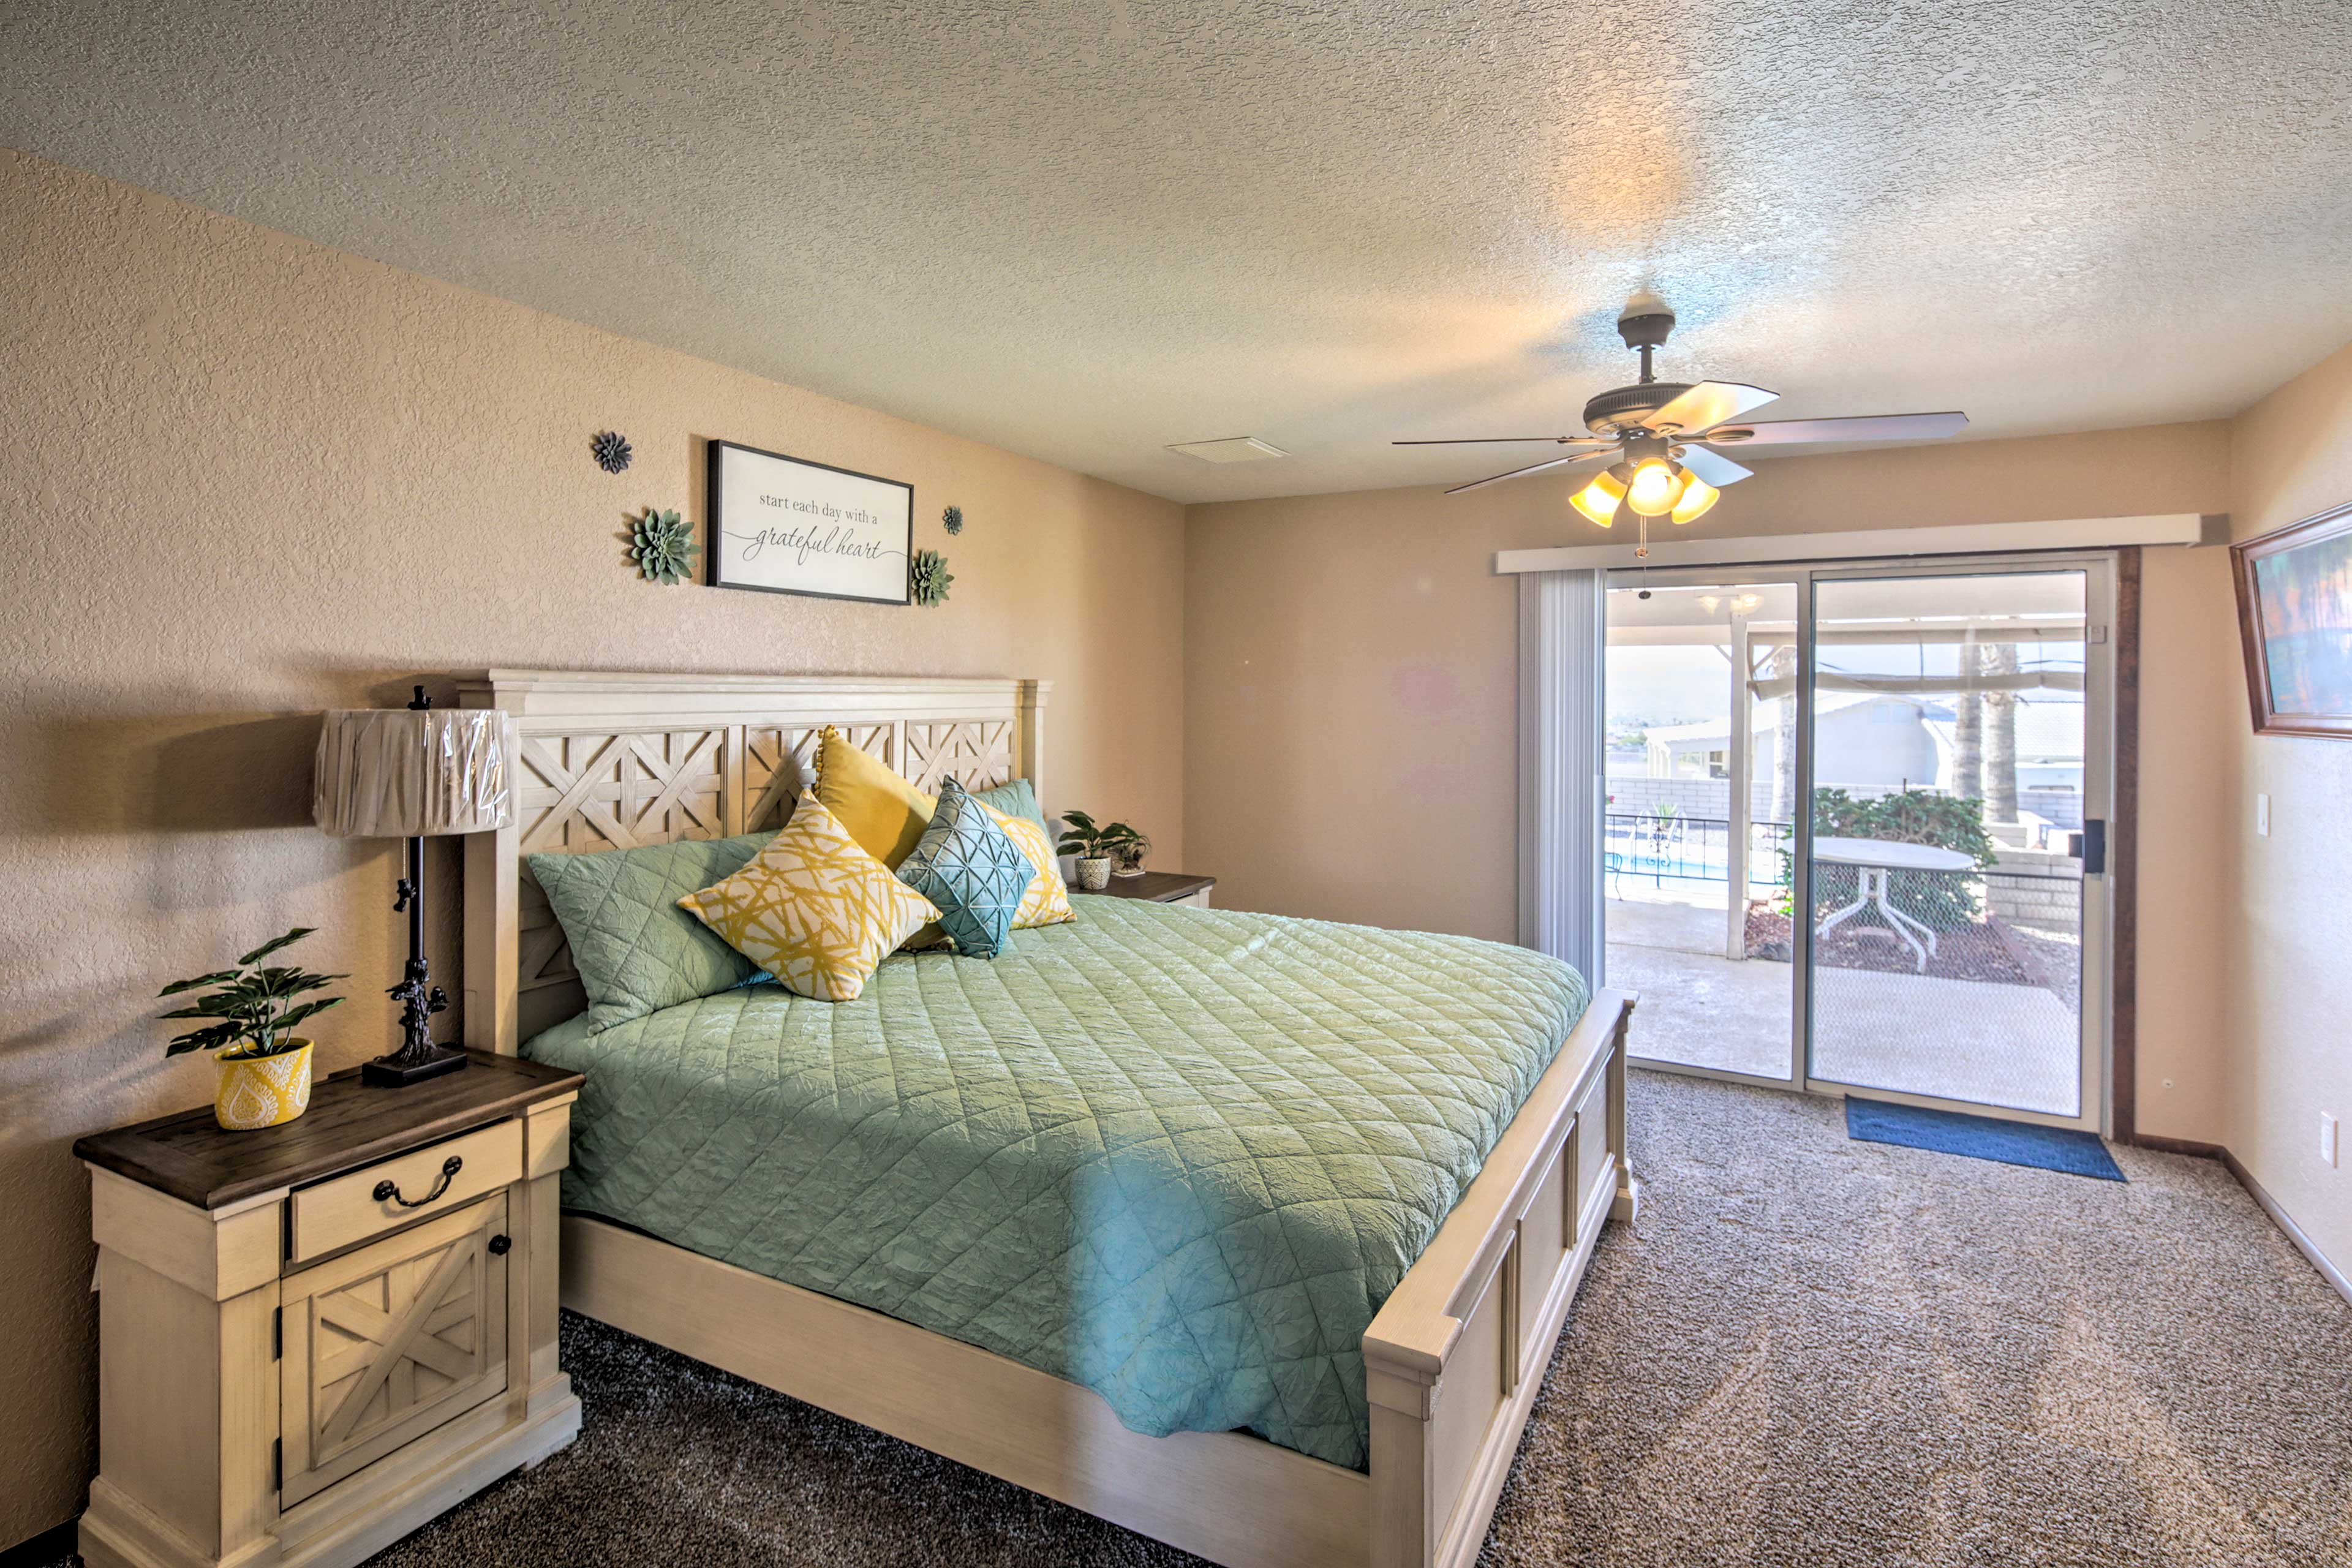 Claim this rejuvenating master bedroom as your own.